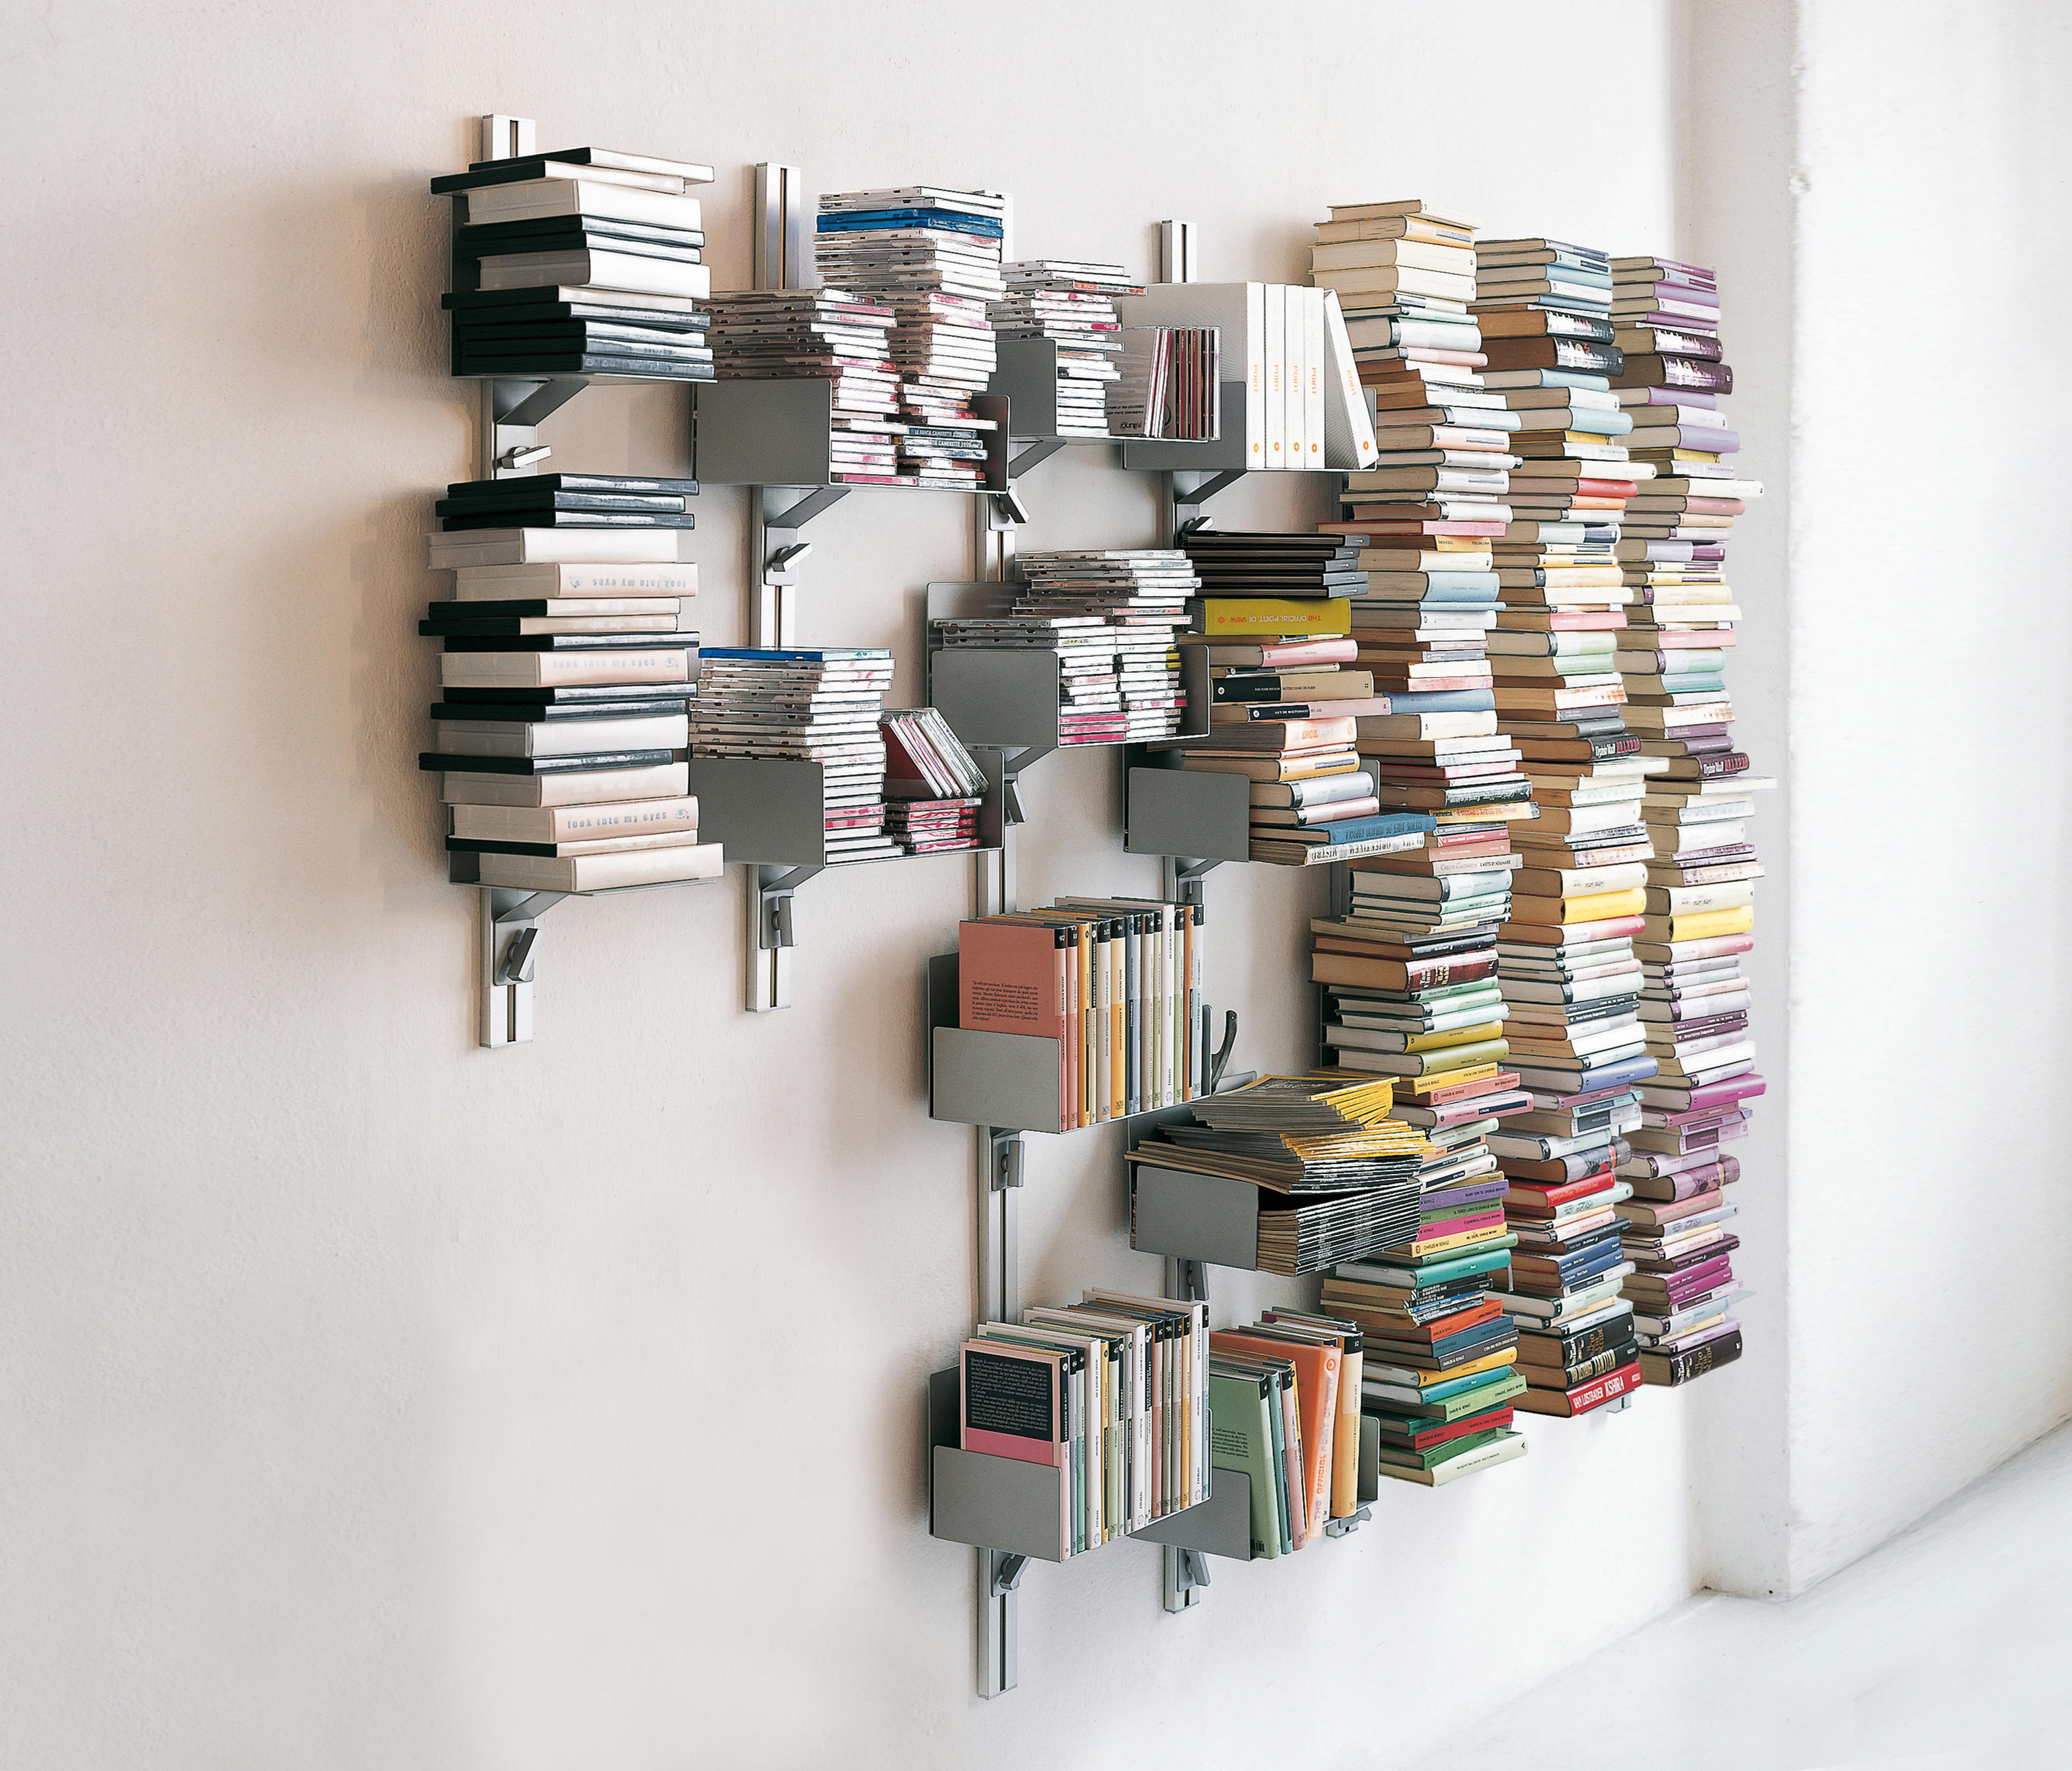 Charmant Totem | At Wall Book Storage By Aico Design | Shelving ...